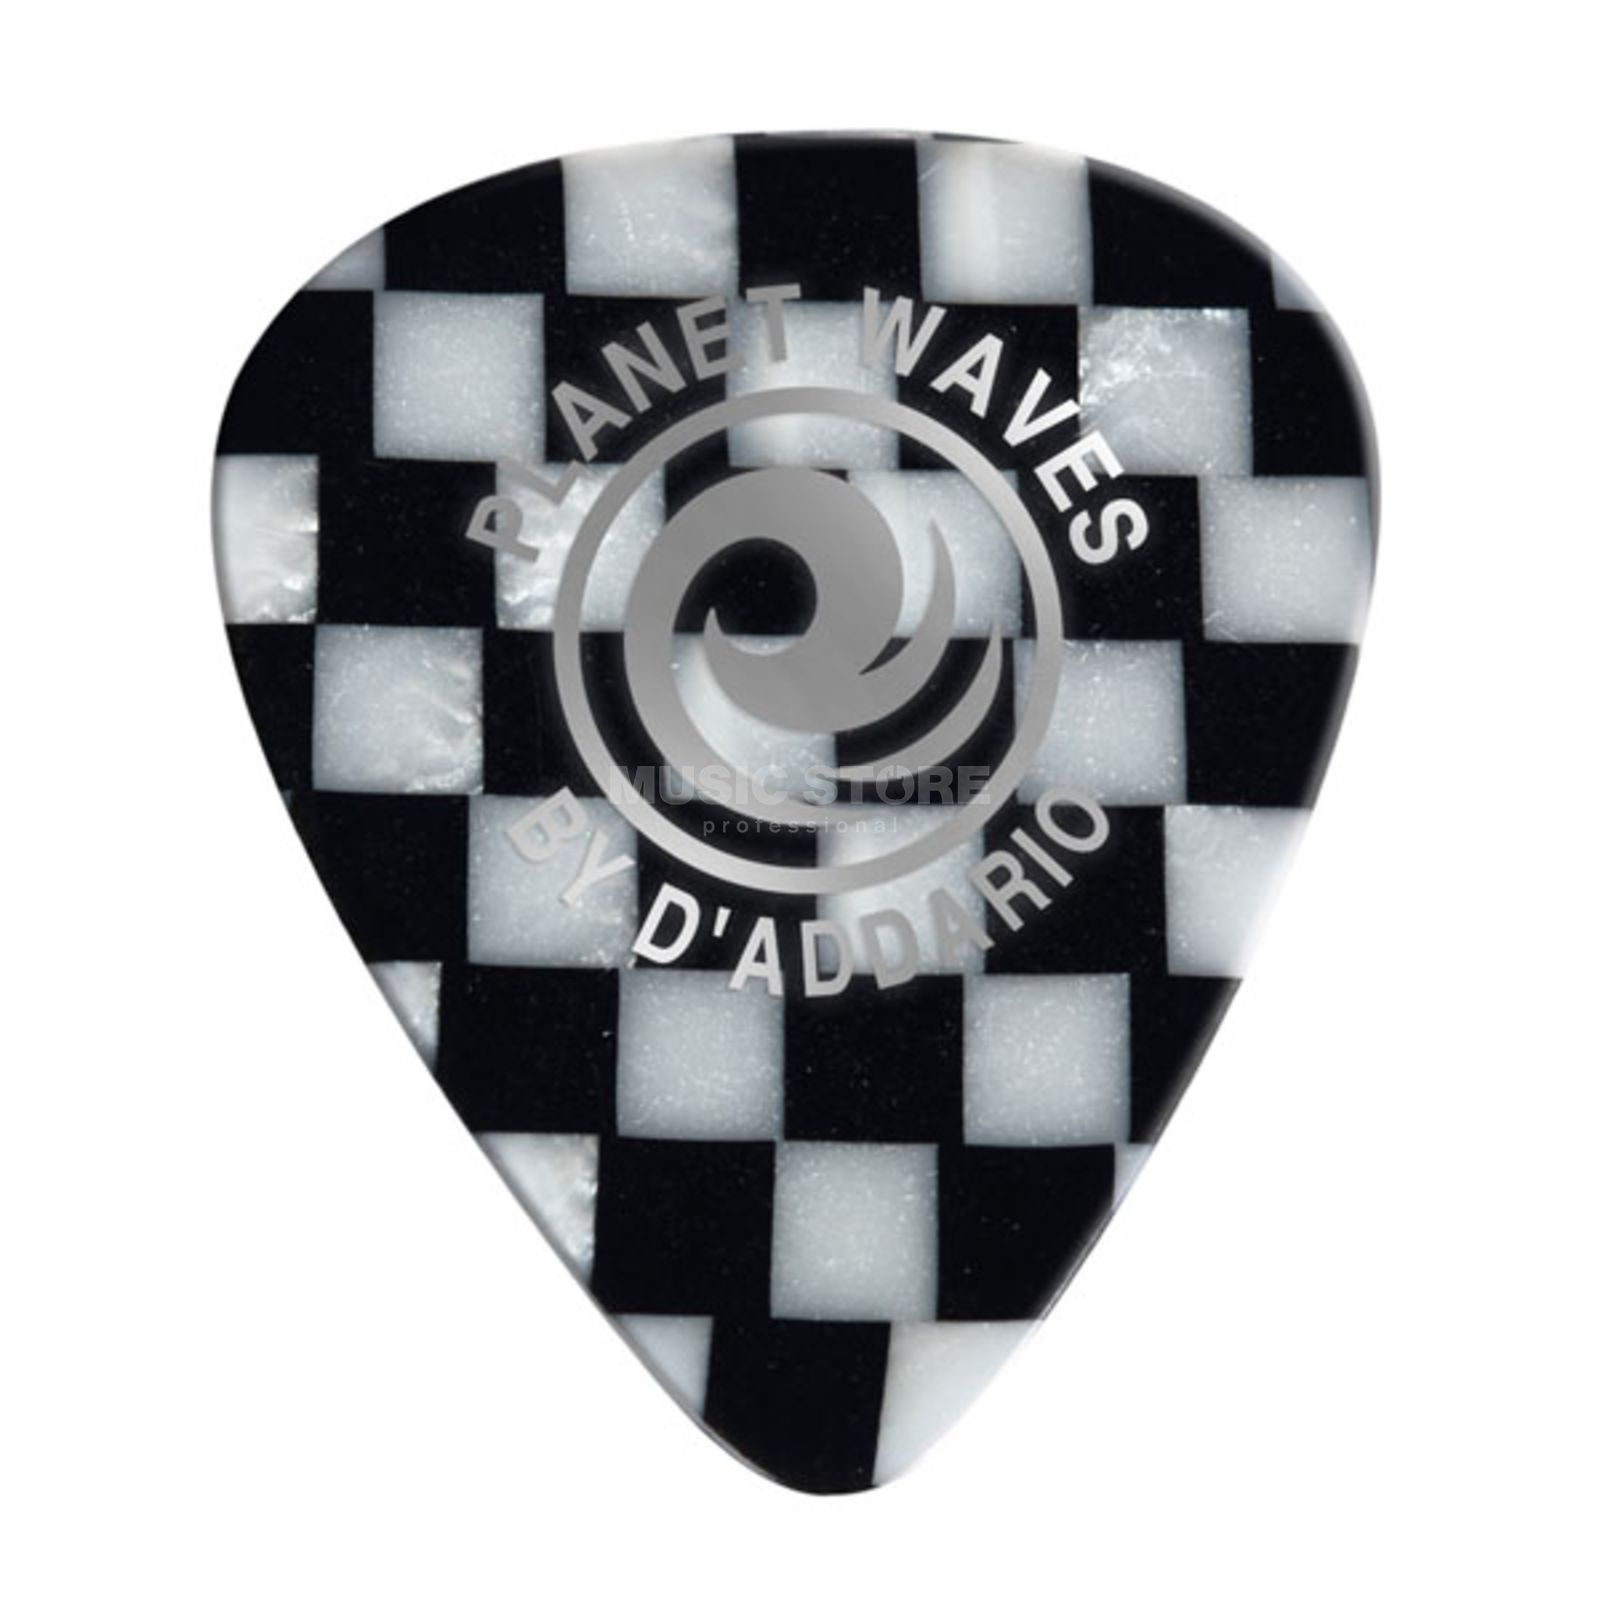 D'Addario Planet Waves Checkerboard Picks 0,50 mm 10-Pack, 1CCB2-10 Produktbillede